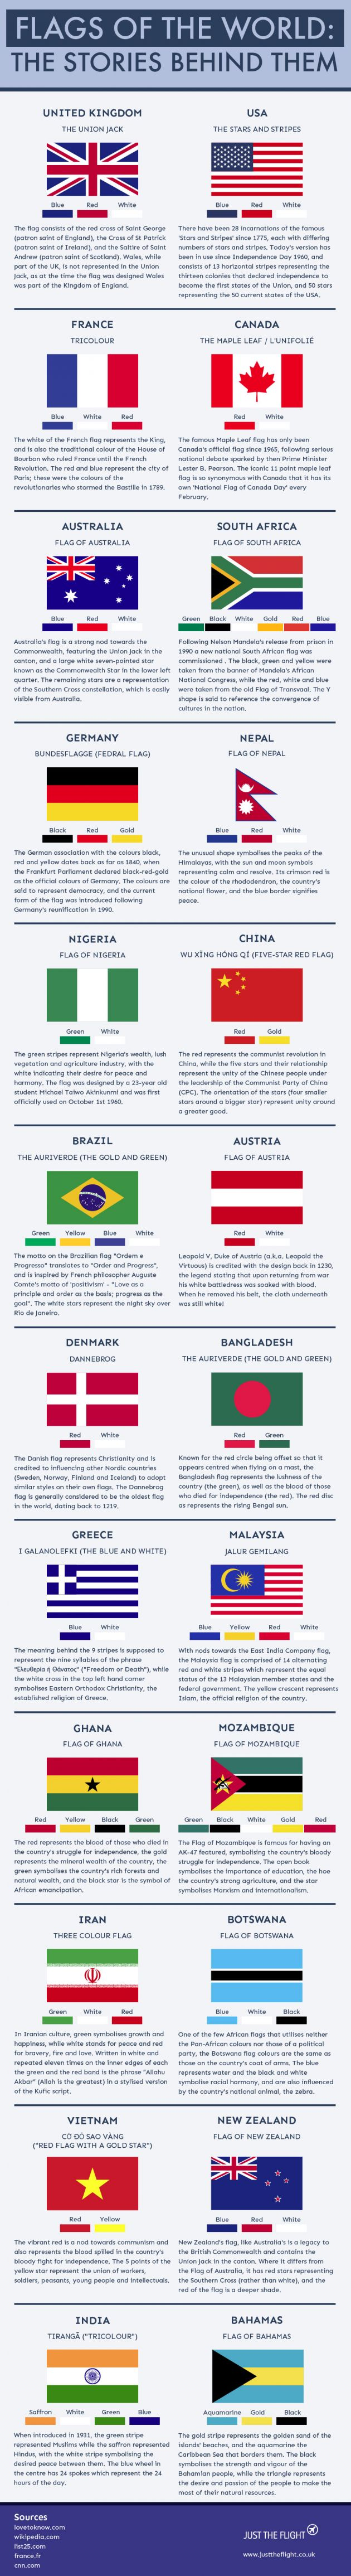 Flags Of The World. Stories Behind Them | These stories aren't 100%. In case of the Brazilian flag, in addition to representing the night sky over Rio on November 15th, 1889, the flag's 27 stars represent the 26 States and the Federal District - Brasilia.  https://pt.m.wikipedia.org/wiki/Bandeira_do_Brasil